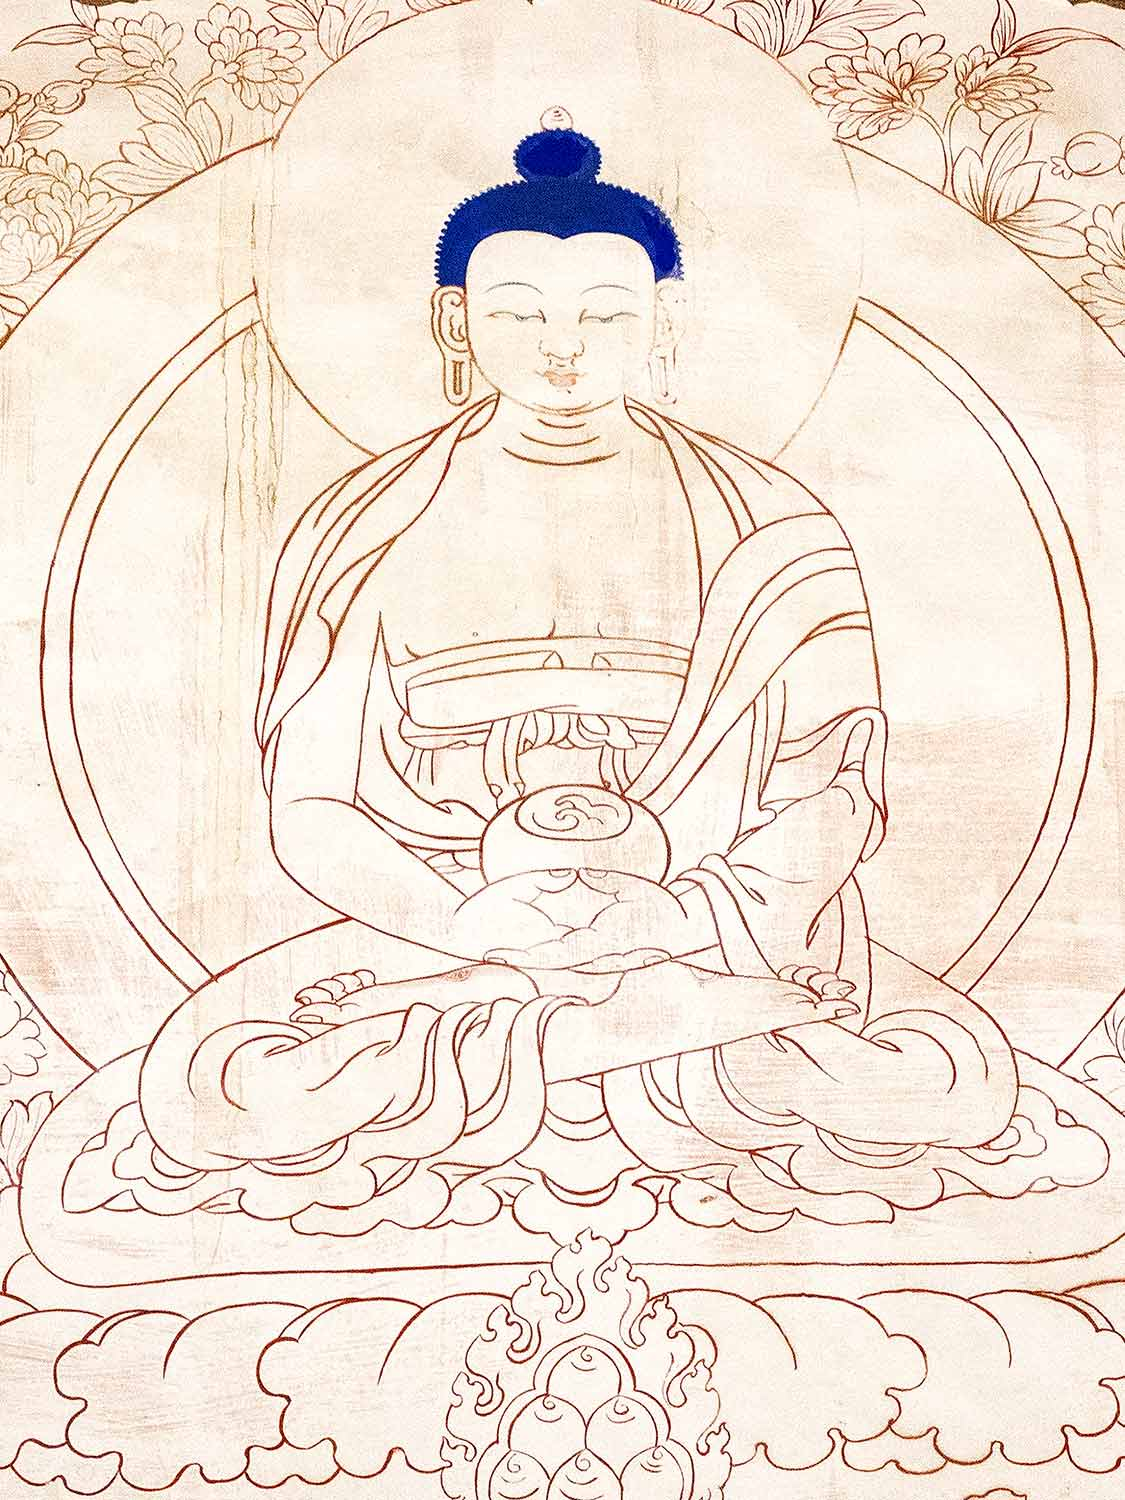 Drawing of the Buddha at Samye